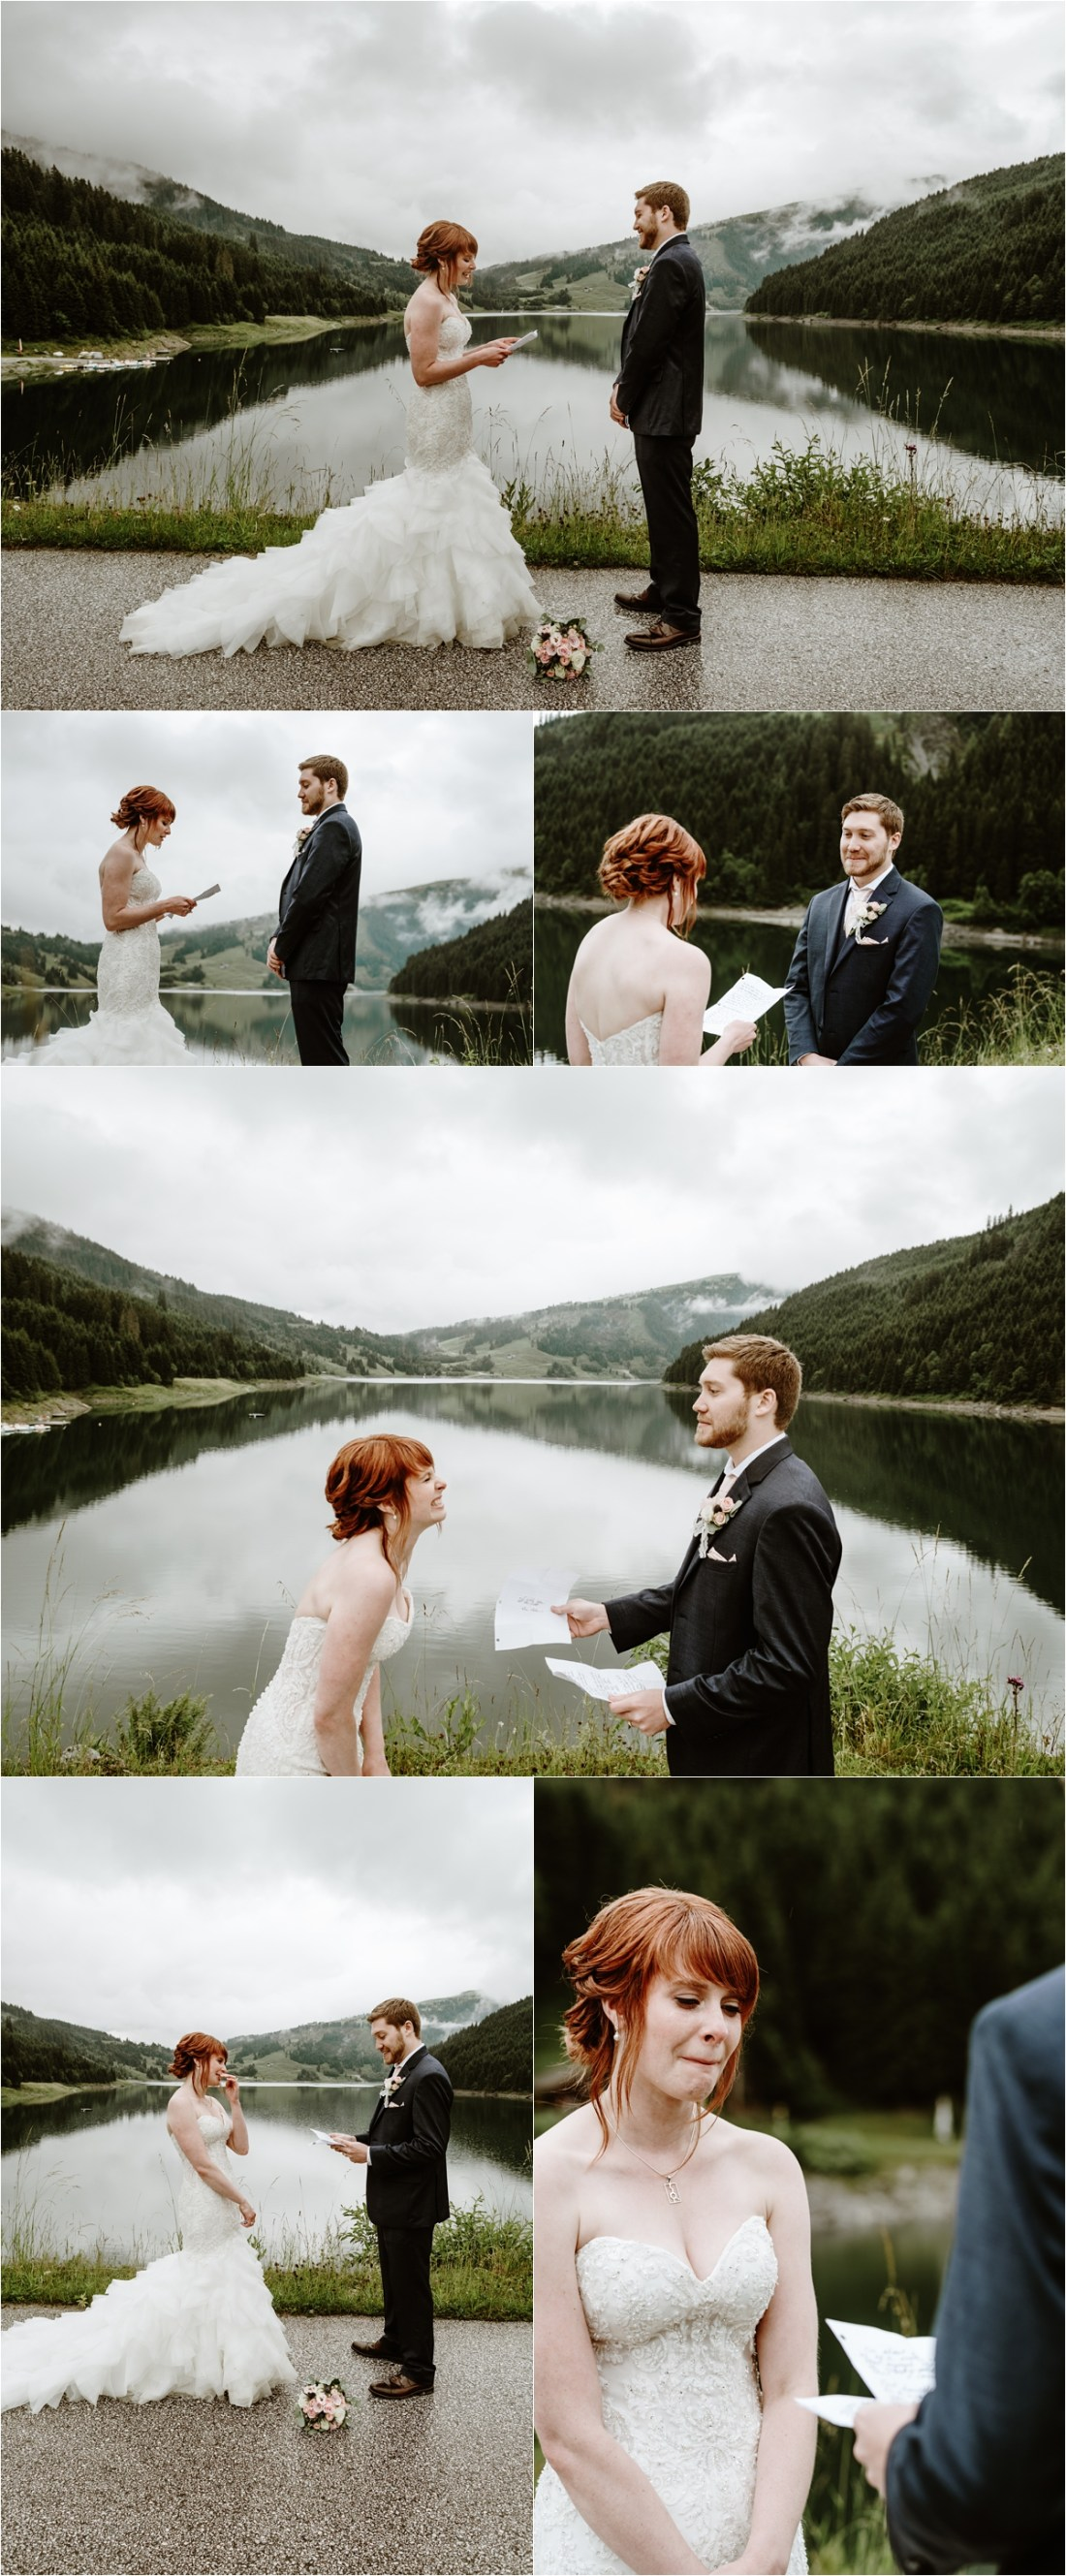 Emma & Adam privately read their wedding vows to one another in the Austrian Alps. Photos by Wild Connections Photography